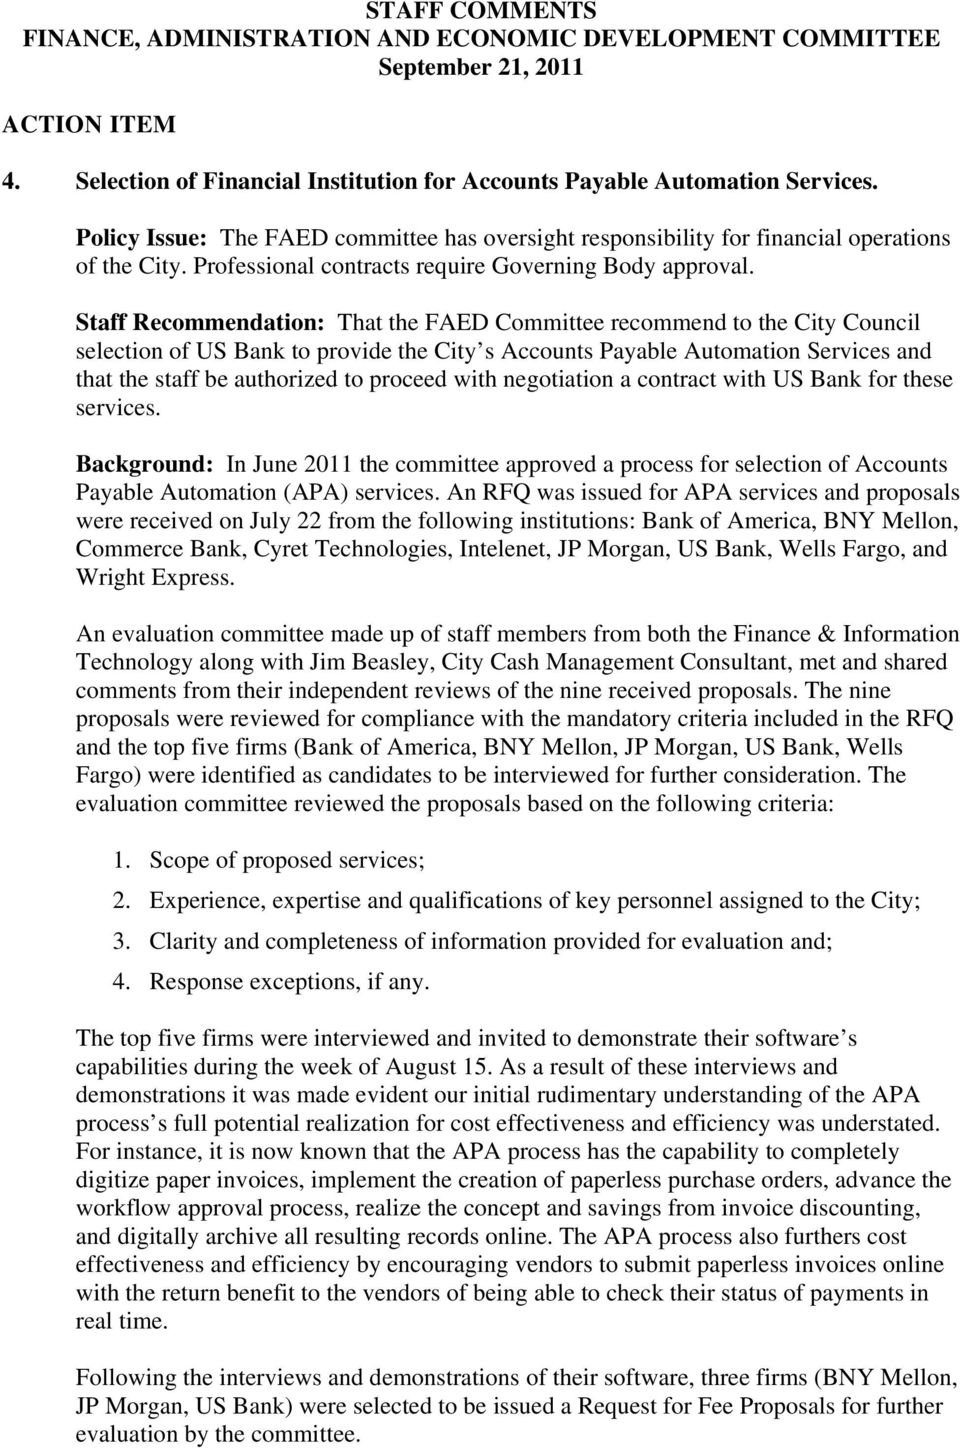 Staff Recommendation: That the FAED Committee recommend to the City Council selection of US Bank to provide the City s Accounts Payable Automation Services and that the staff be authorized to proceed